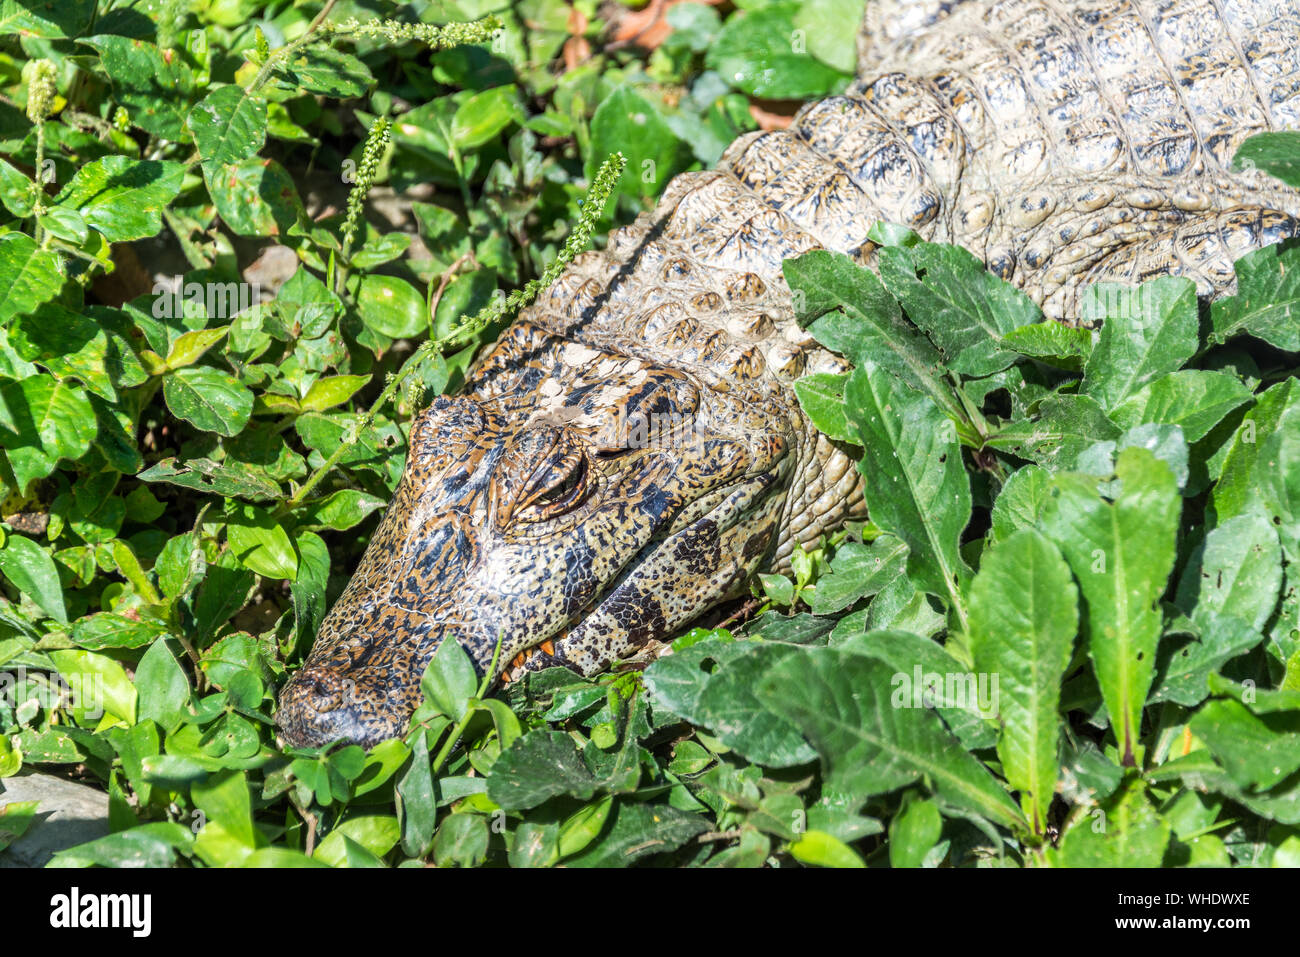 Caiman Amidst Leaves Stock Photo